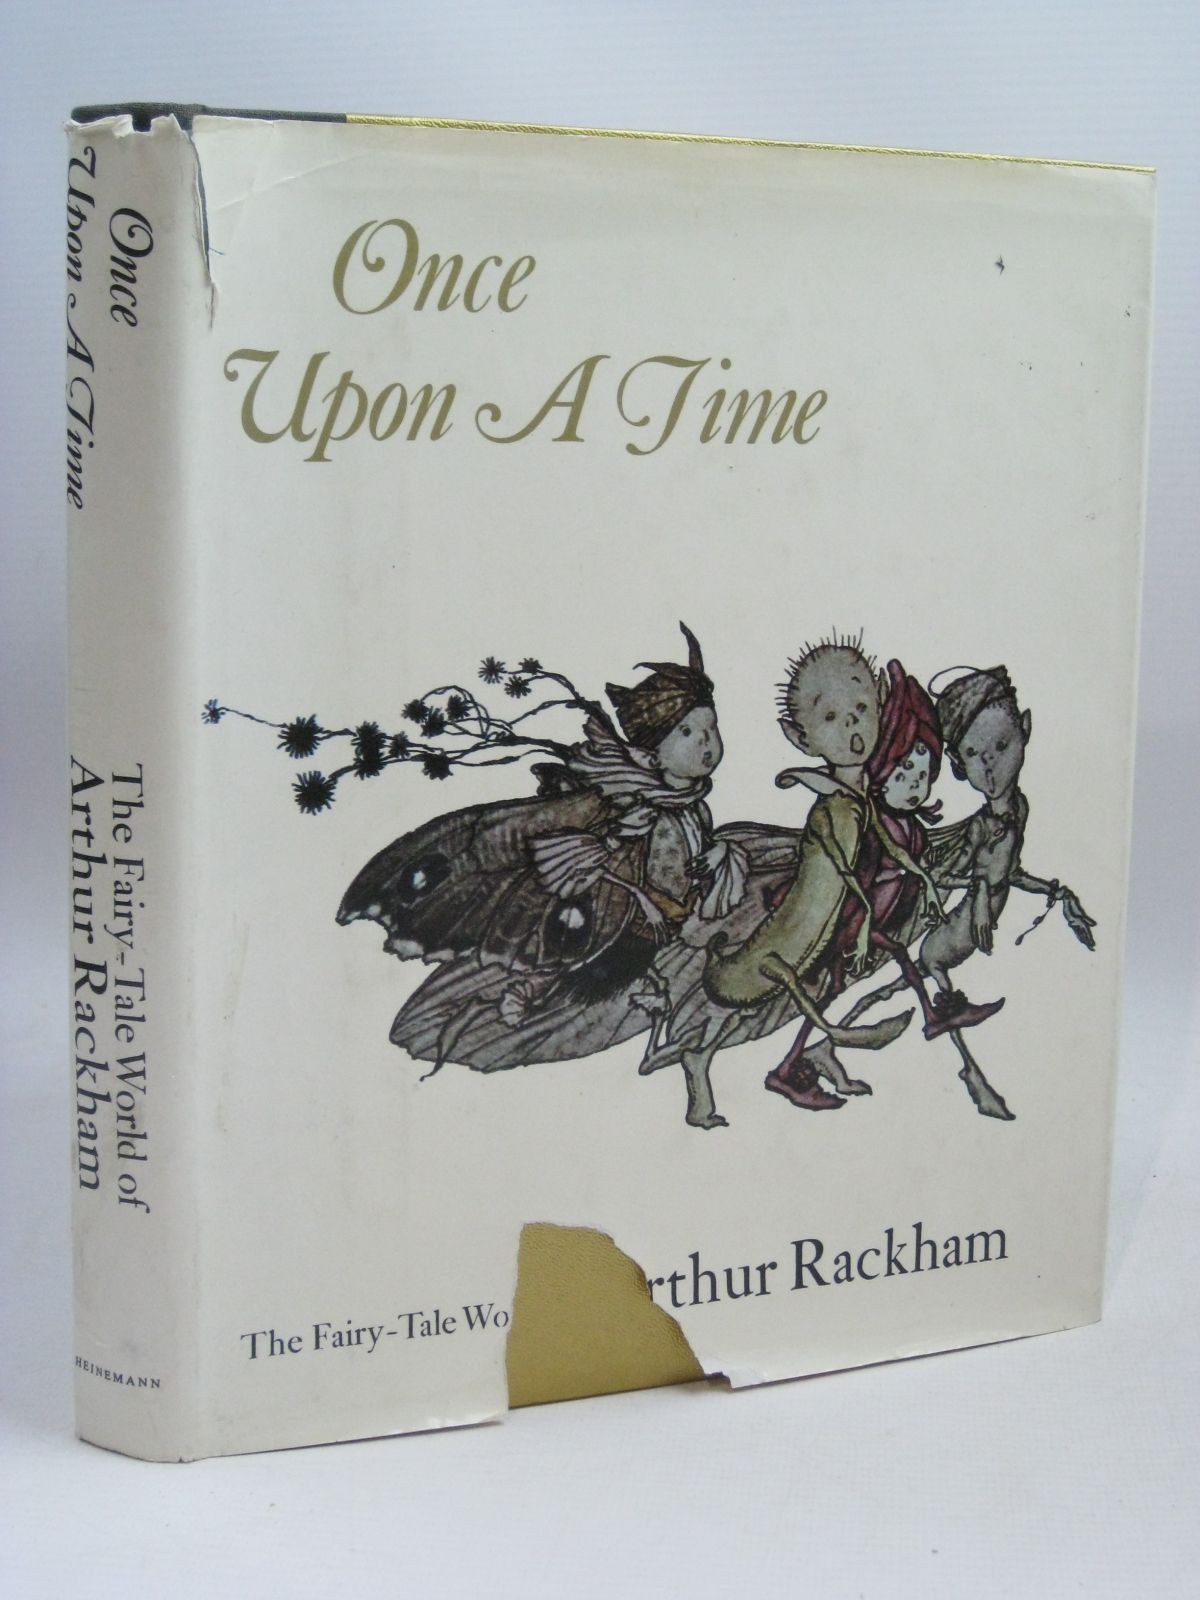 Photo of ONCE UPON A TIME THE FAIRY-TALE WORLD OF ARTHUR RACKHAM written by Darrell, Margery illustrated by Rackham, Arthur published by Heinemann (STOCK CODE: 1316220)  for sale by Stella & Rose's Books